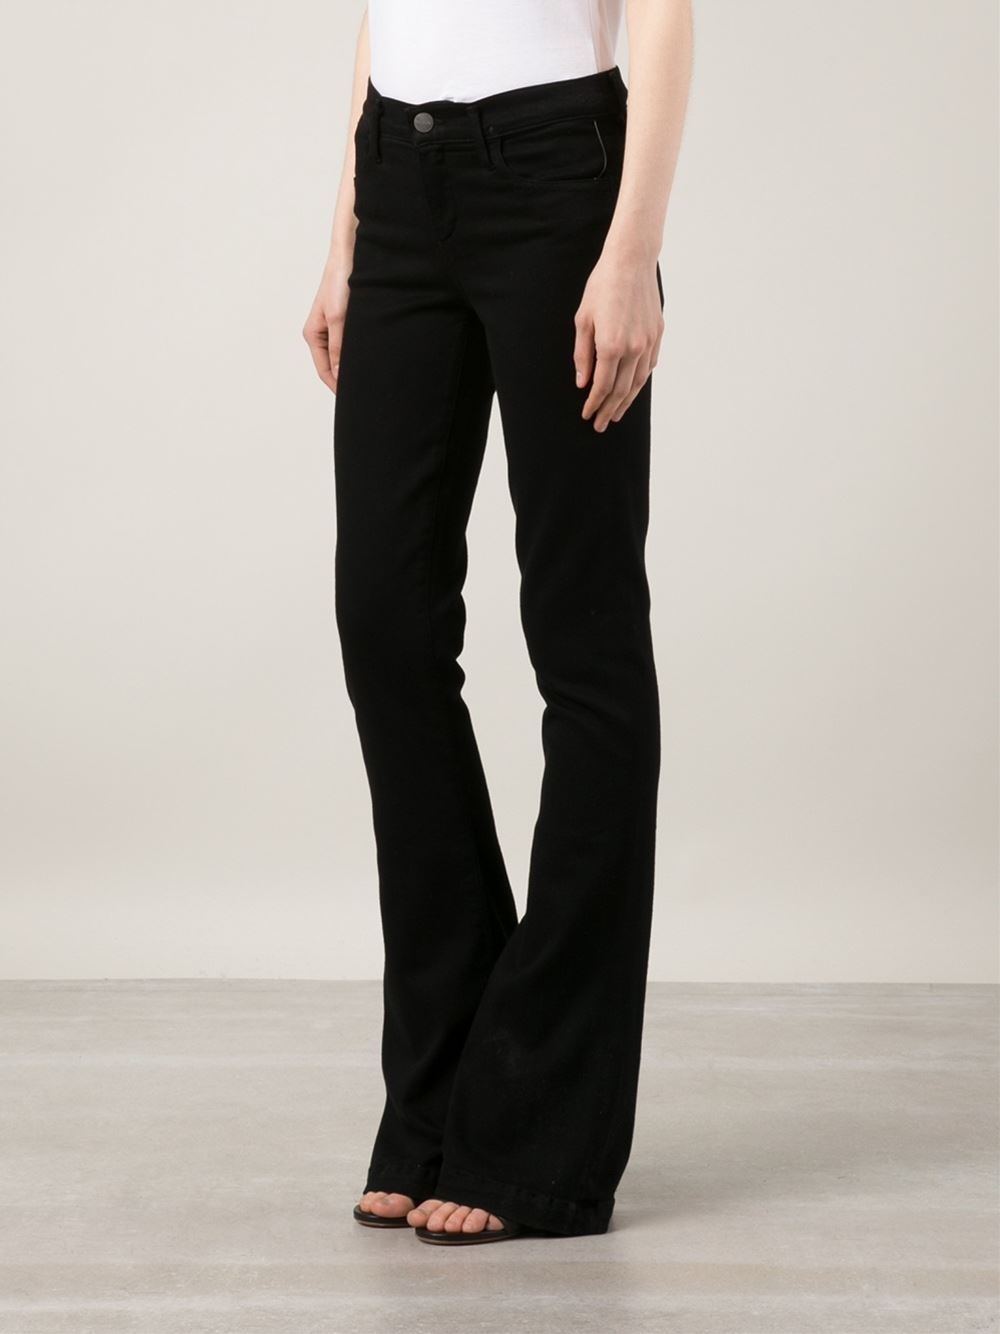 Goldsign Flared Mid Rise Stretch Denim Jeans In Black Lyst